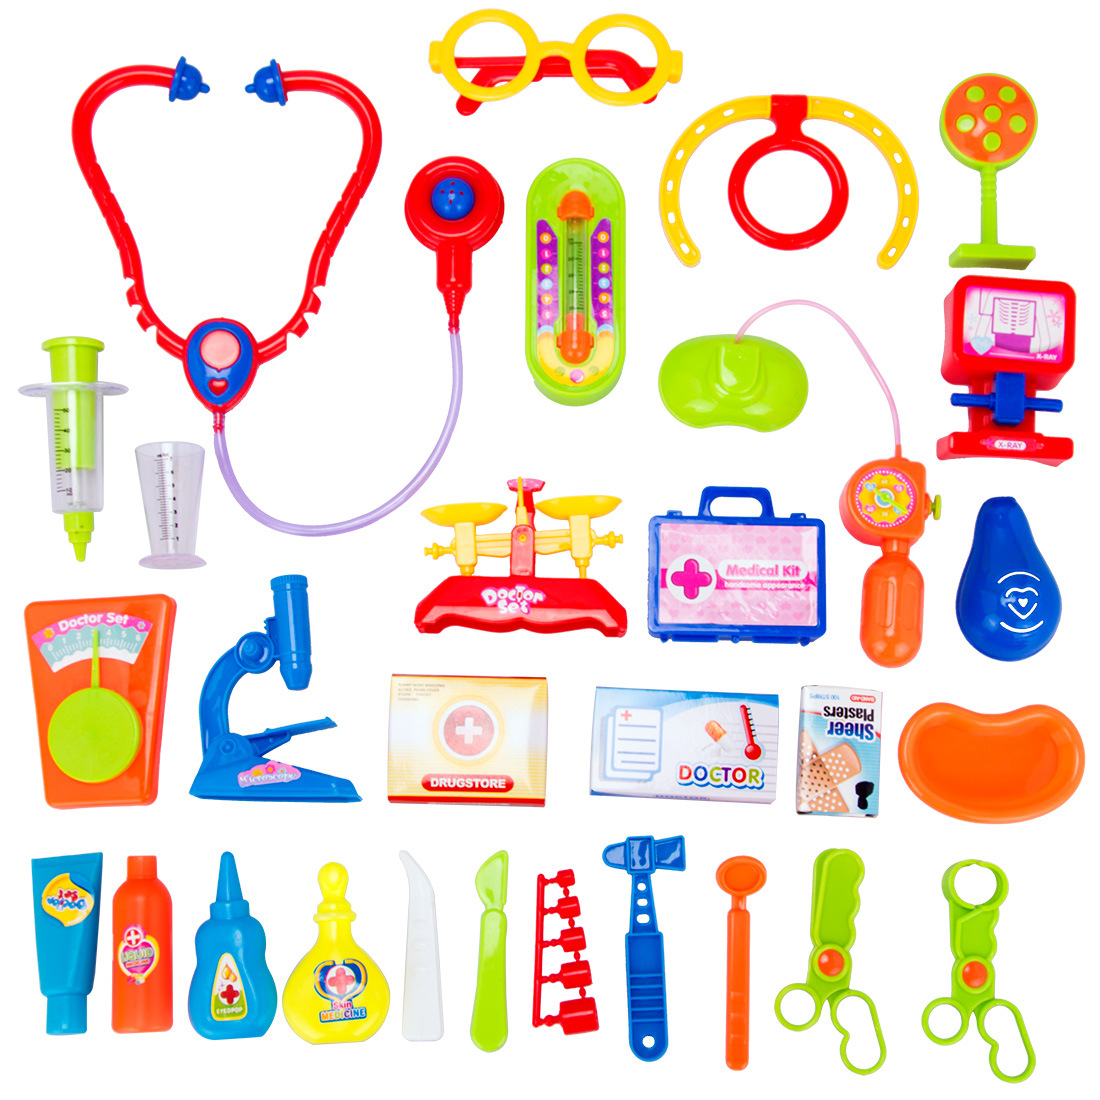 30pcs Medical Kit Kids Doctor Toys Set Role Play Toy Children Pretend Play House doctora juguetes